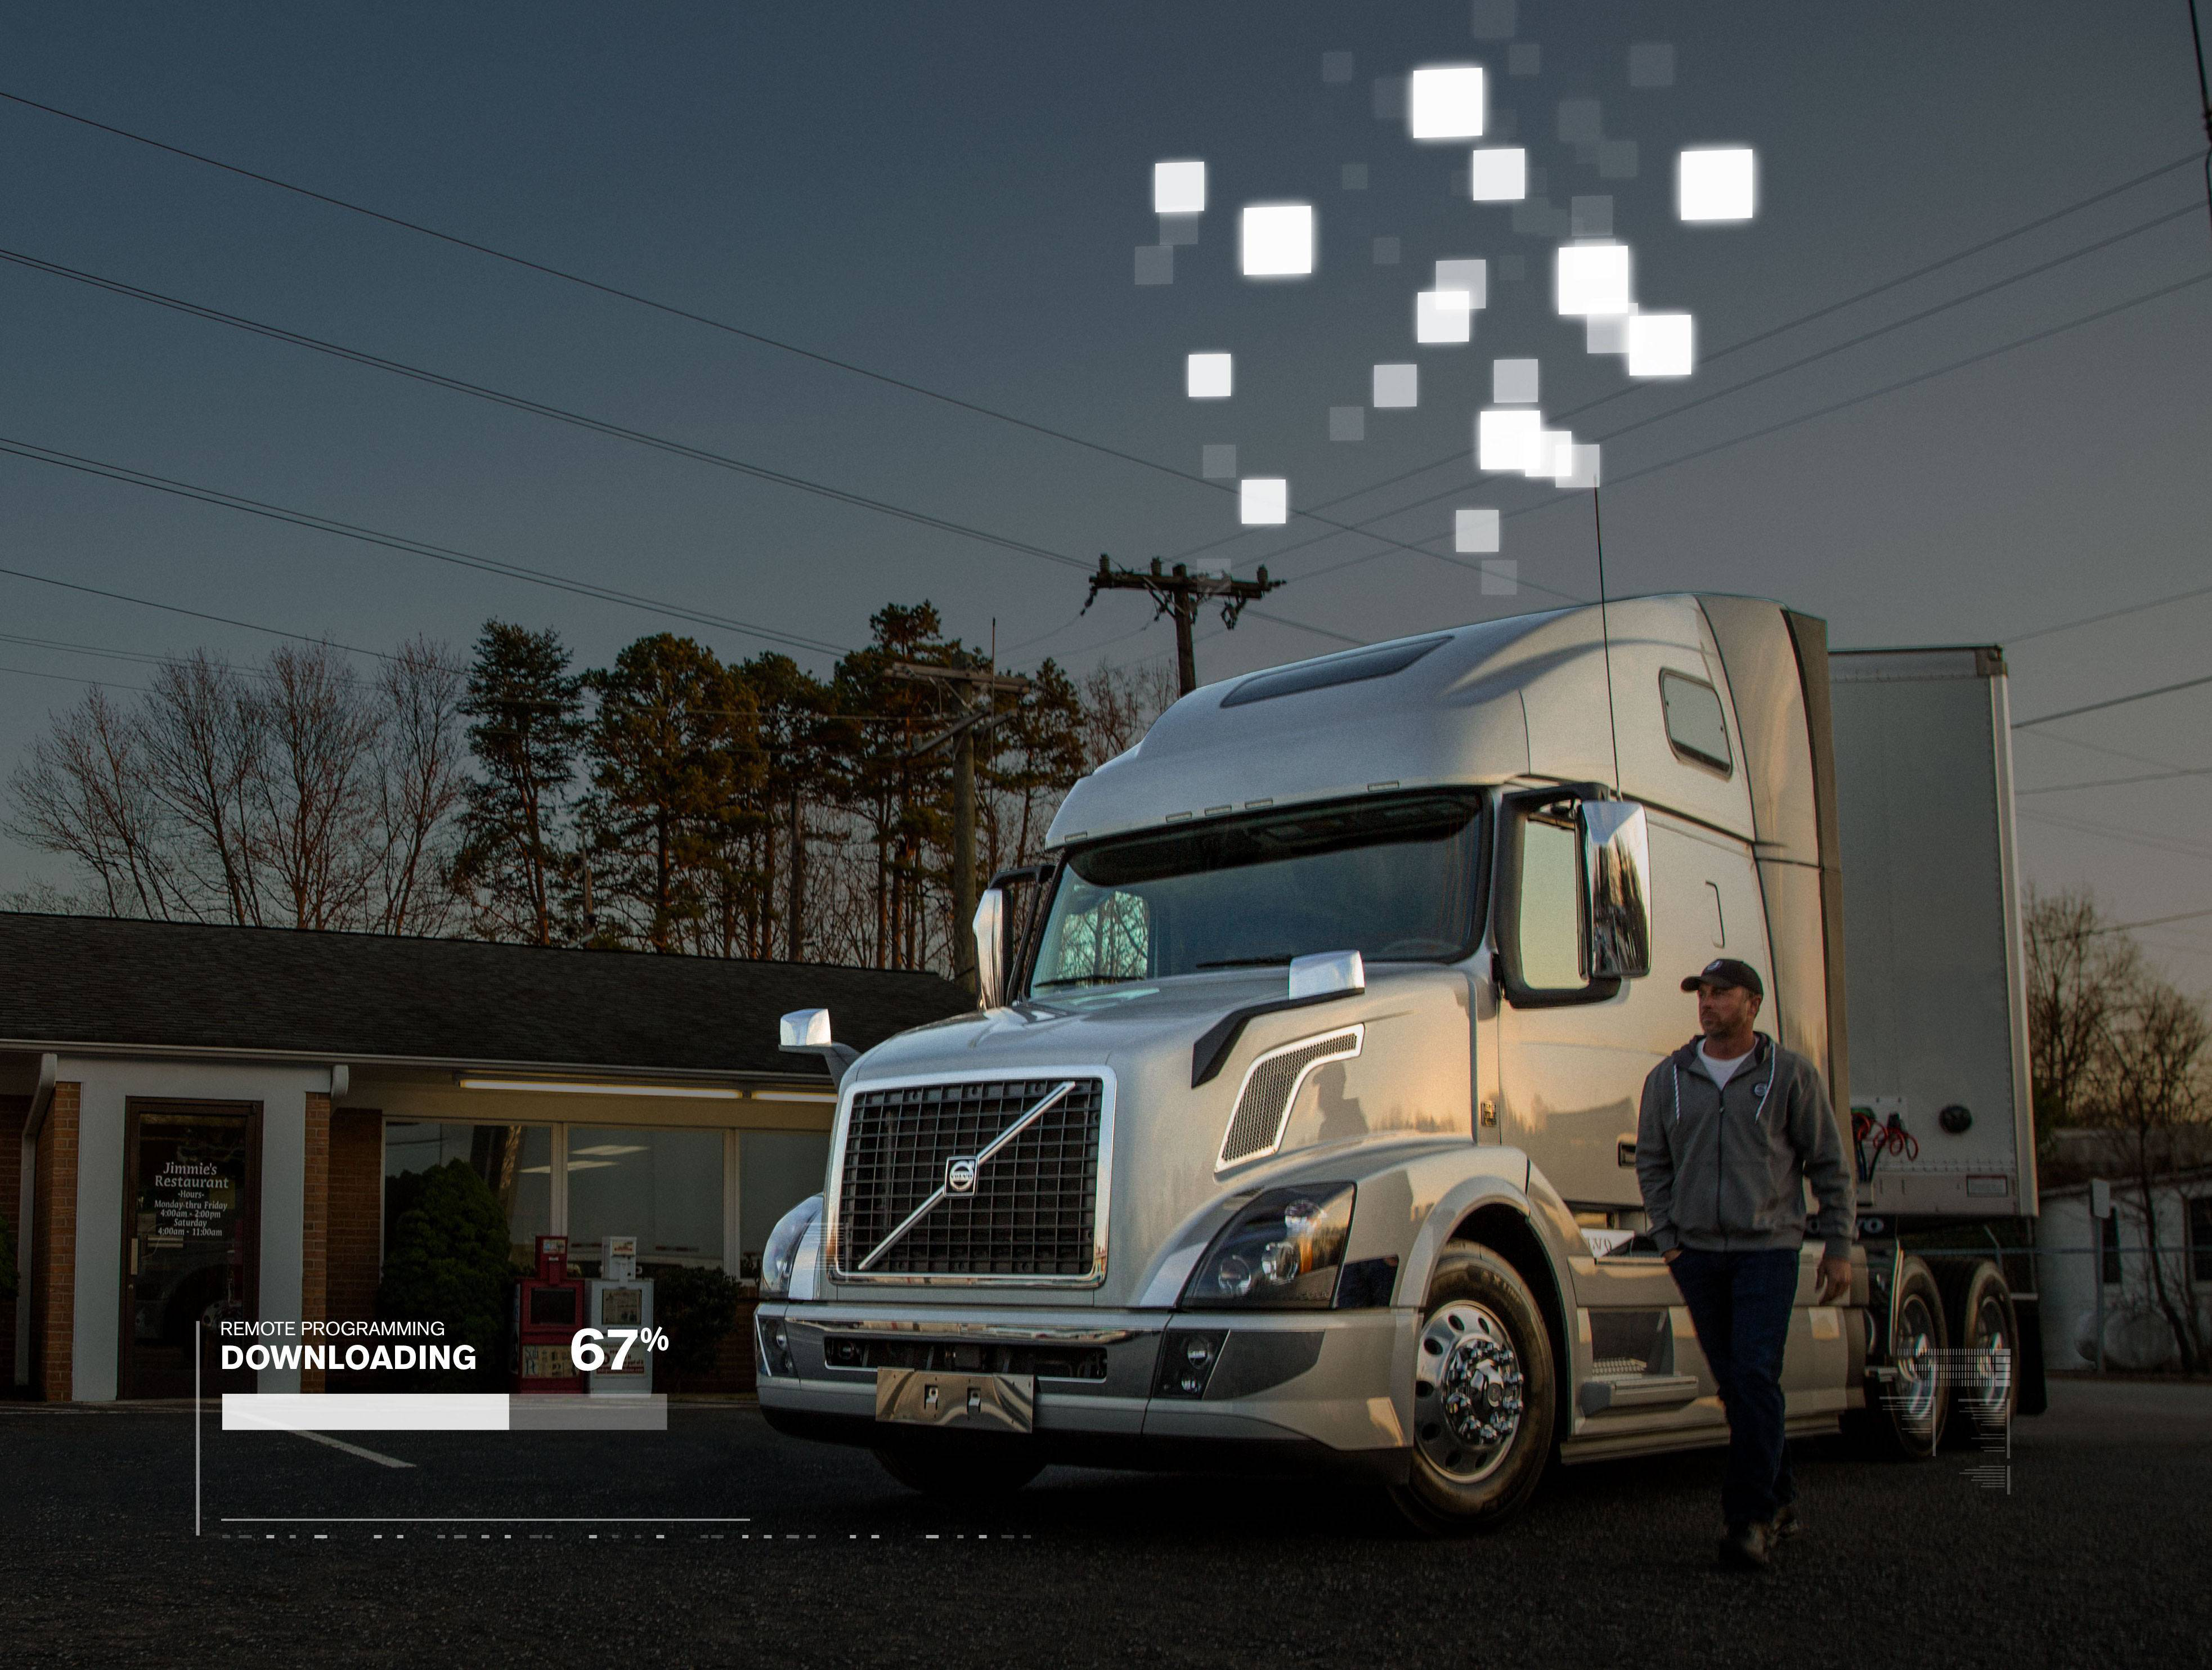 Remote Programming For 2017 Engines Presents By Volvo Trucks